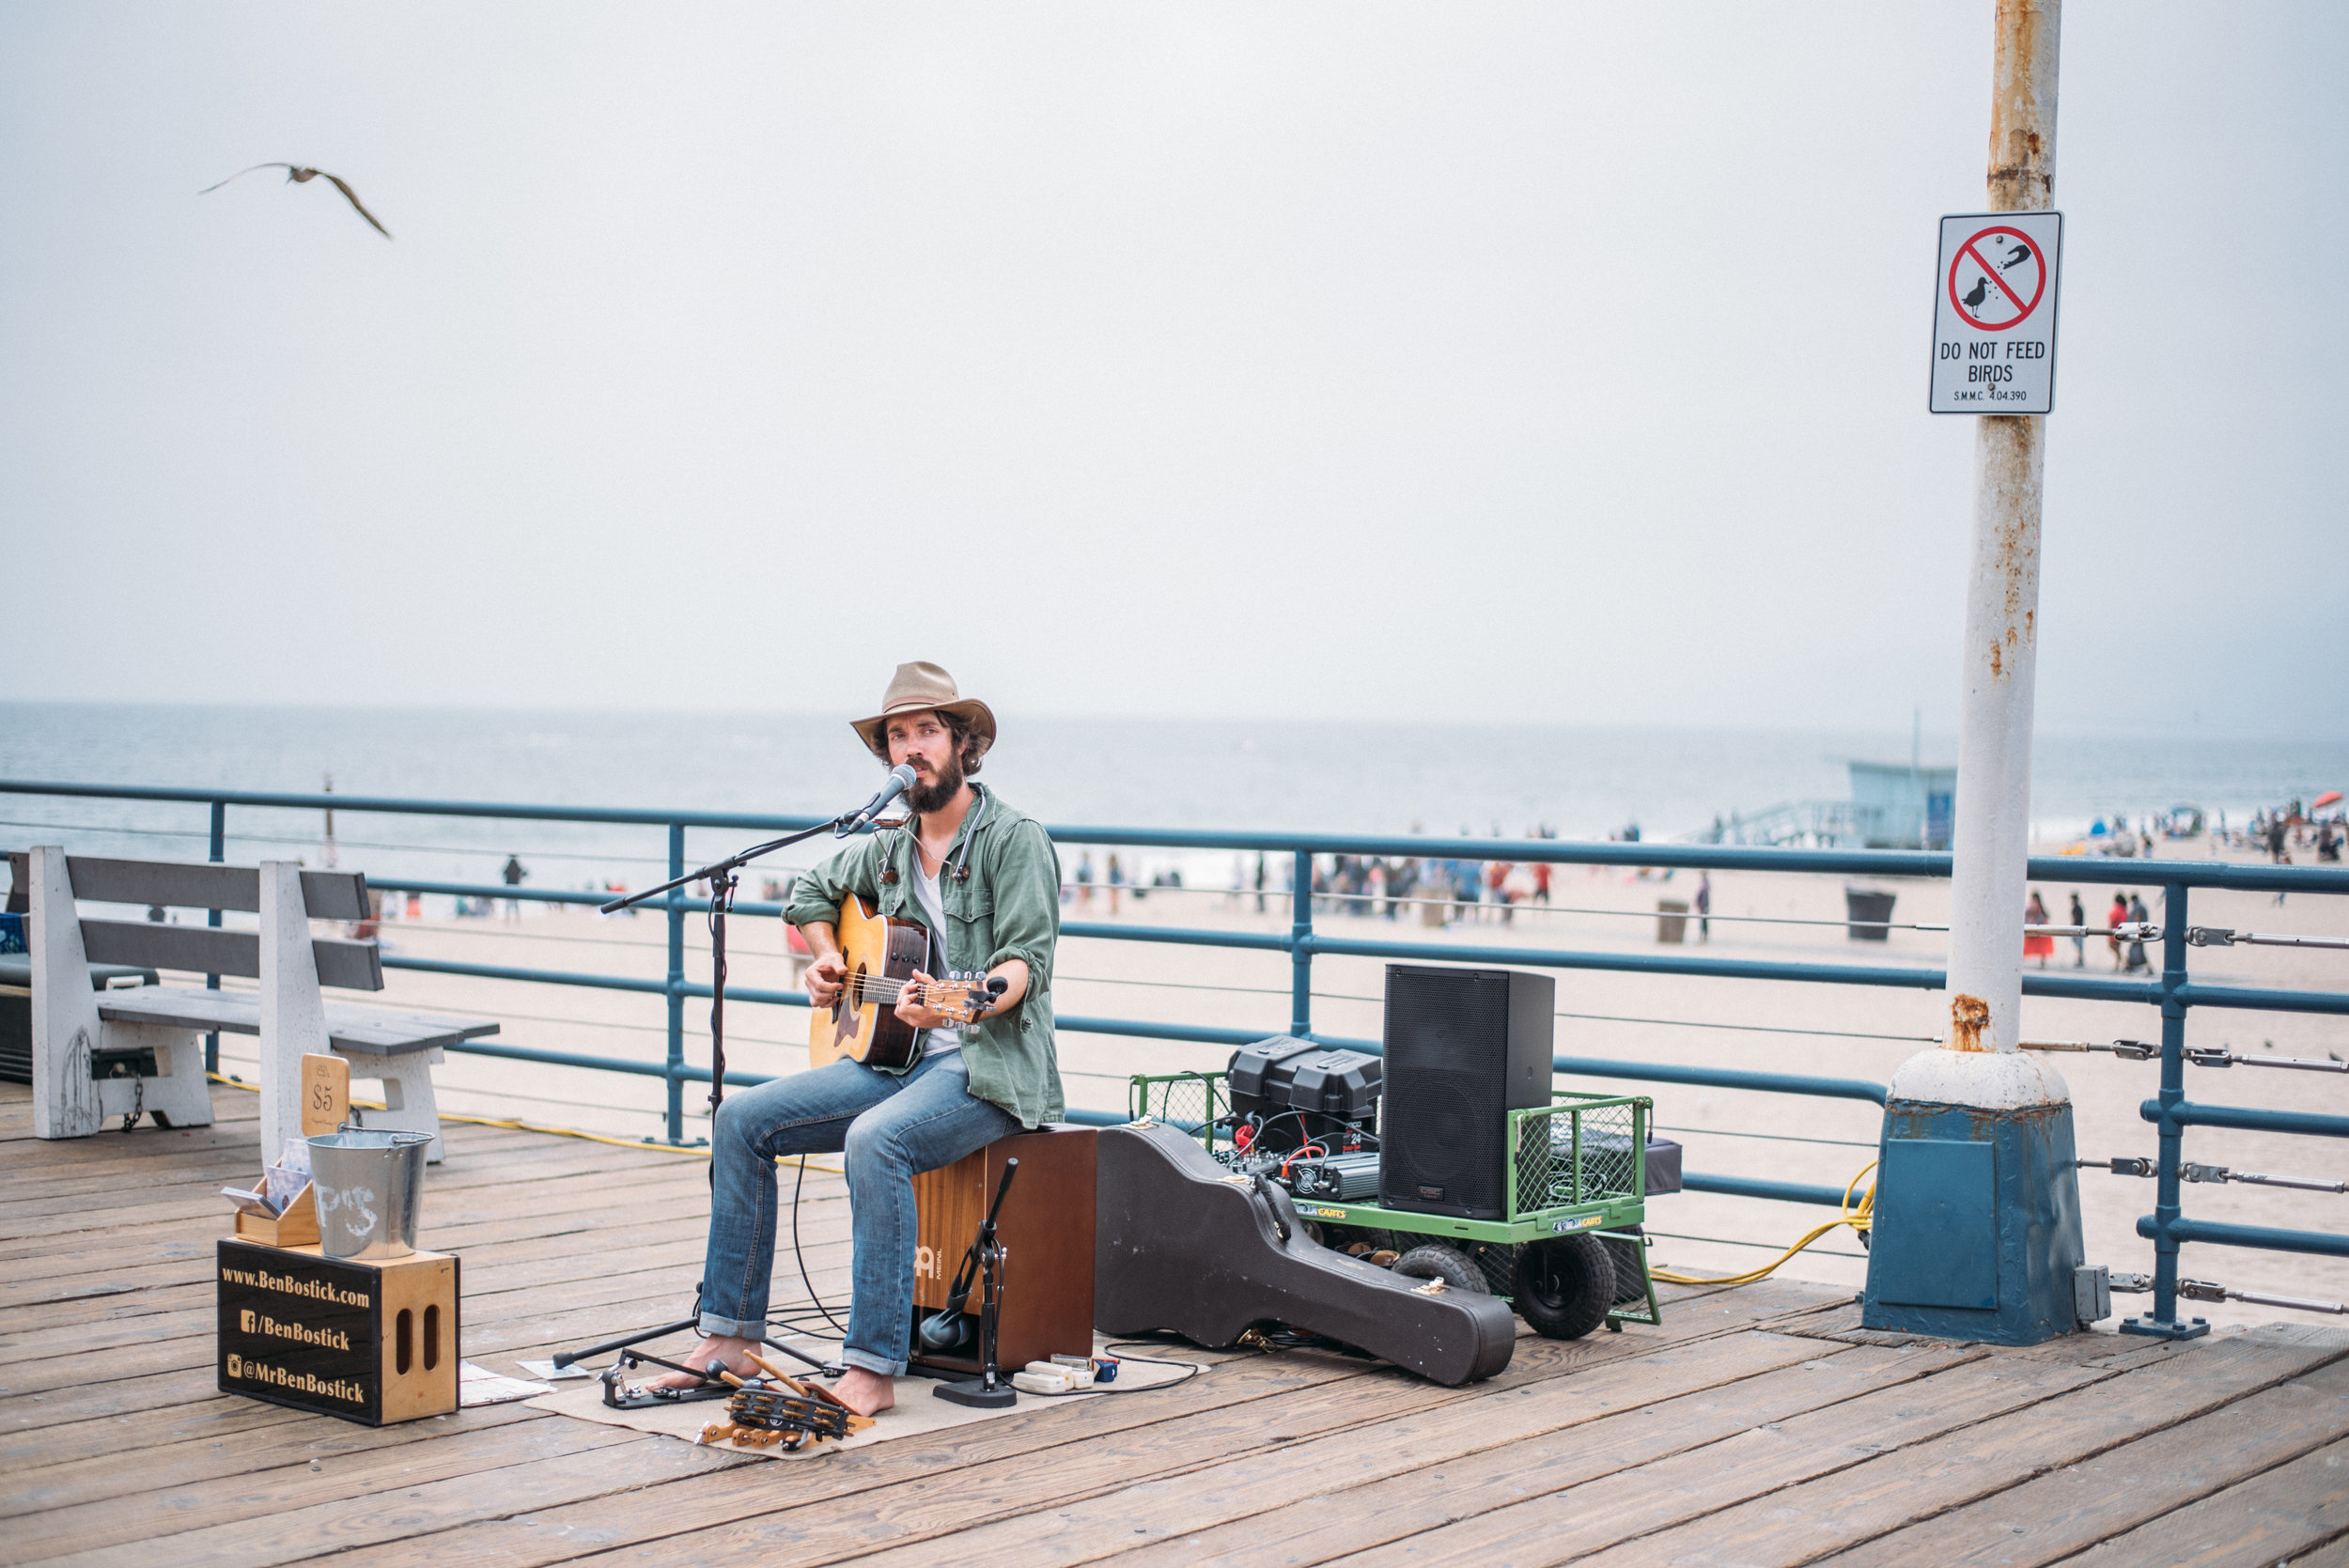 Tell Your Story - This next photo is of a performer here at the Santa Monica pier. He doesn't look posed, contrived, or awkward at all because he's in his element. He's himself. What speaks in this photo is the raw emotion and pain that you can see in his face and how expressive he is in this one shot. Had this been a posed portrait of him 'pretending' to perform, the story and emotion would have been lost.